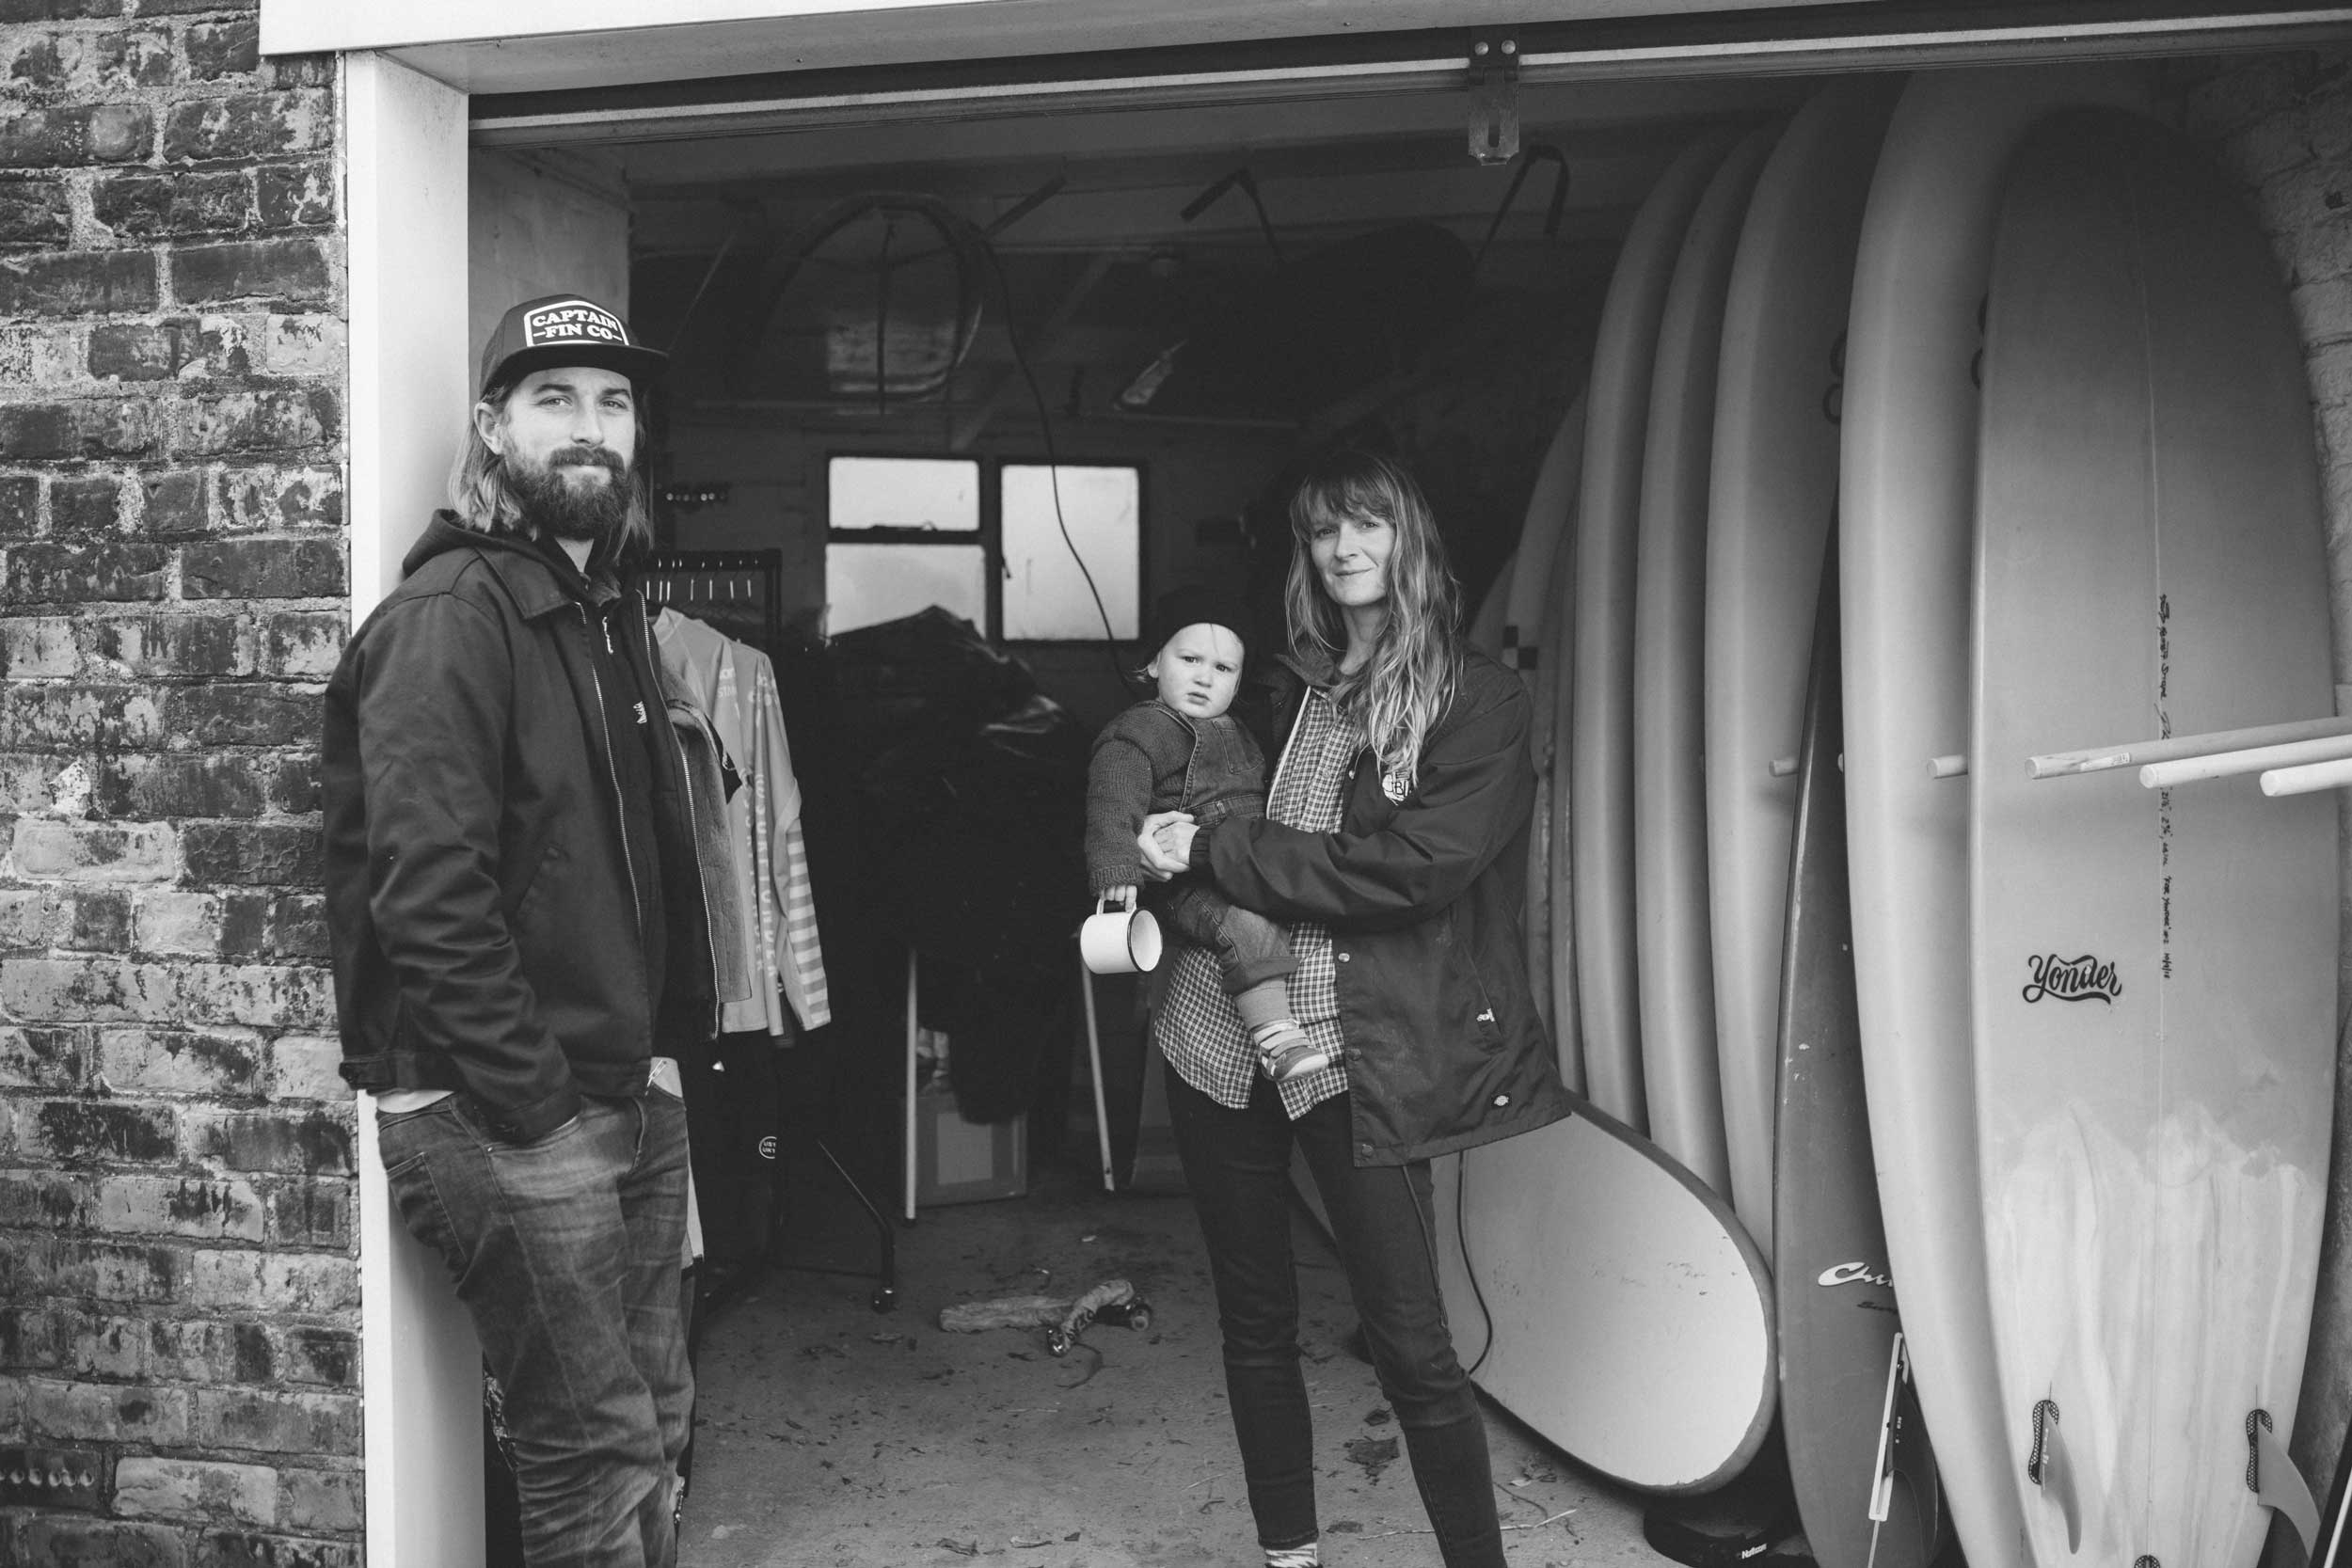 James_Norman_Sally_McGee_Surf_Yonder_petrolette_ivv_MG_4560.jpg